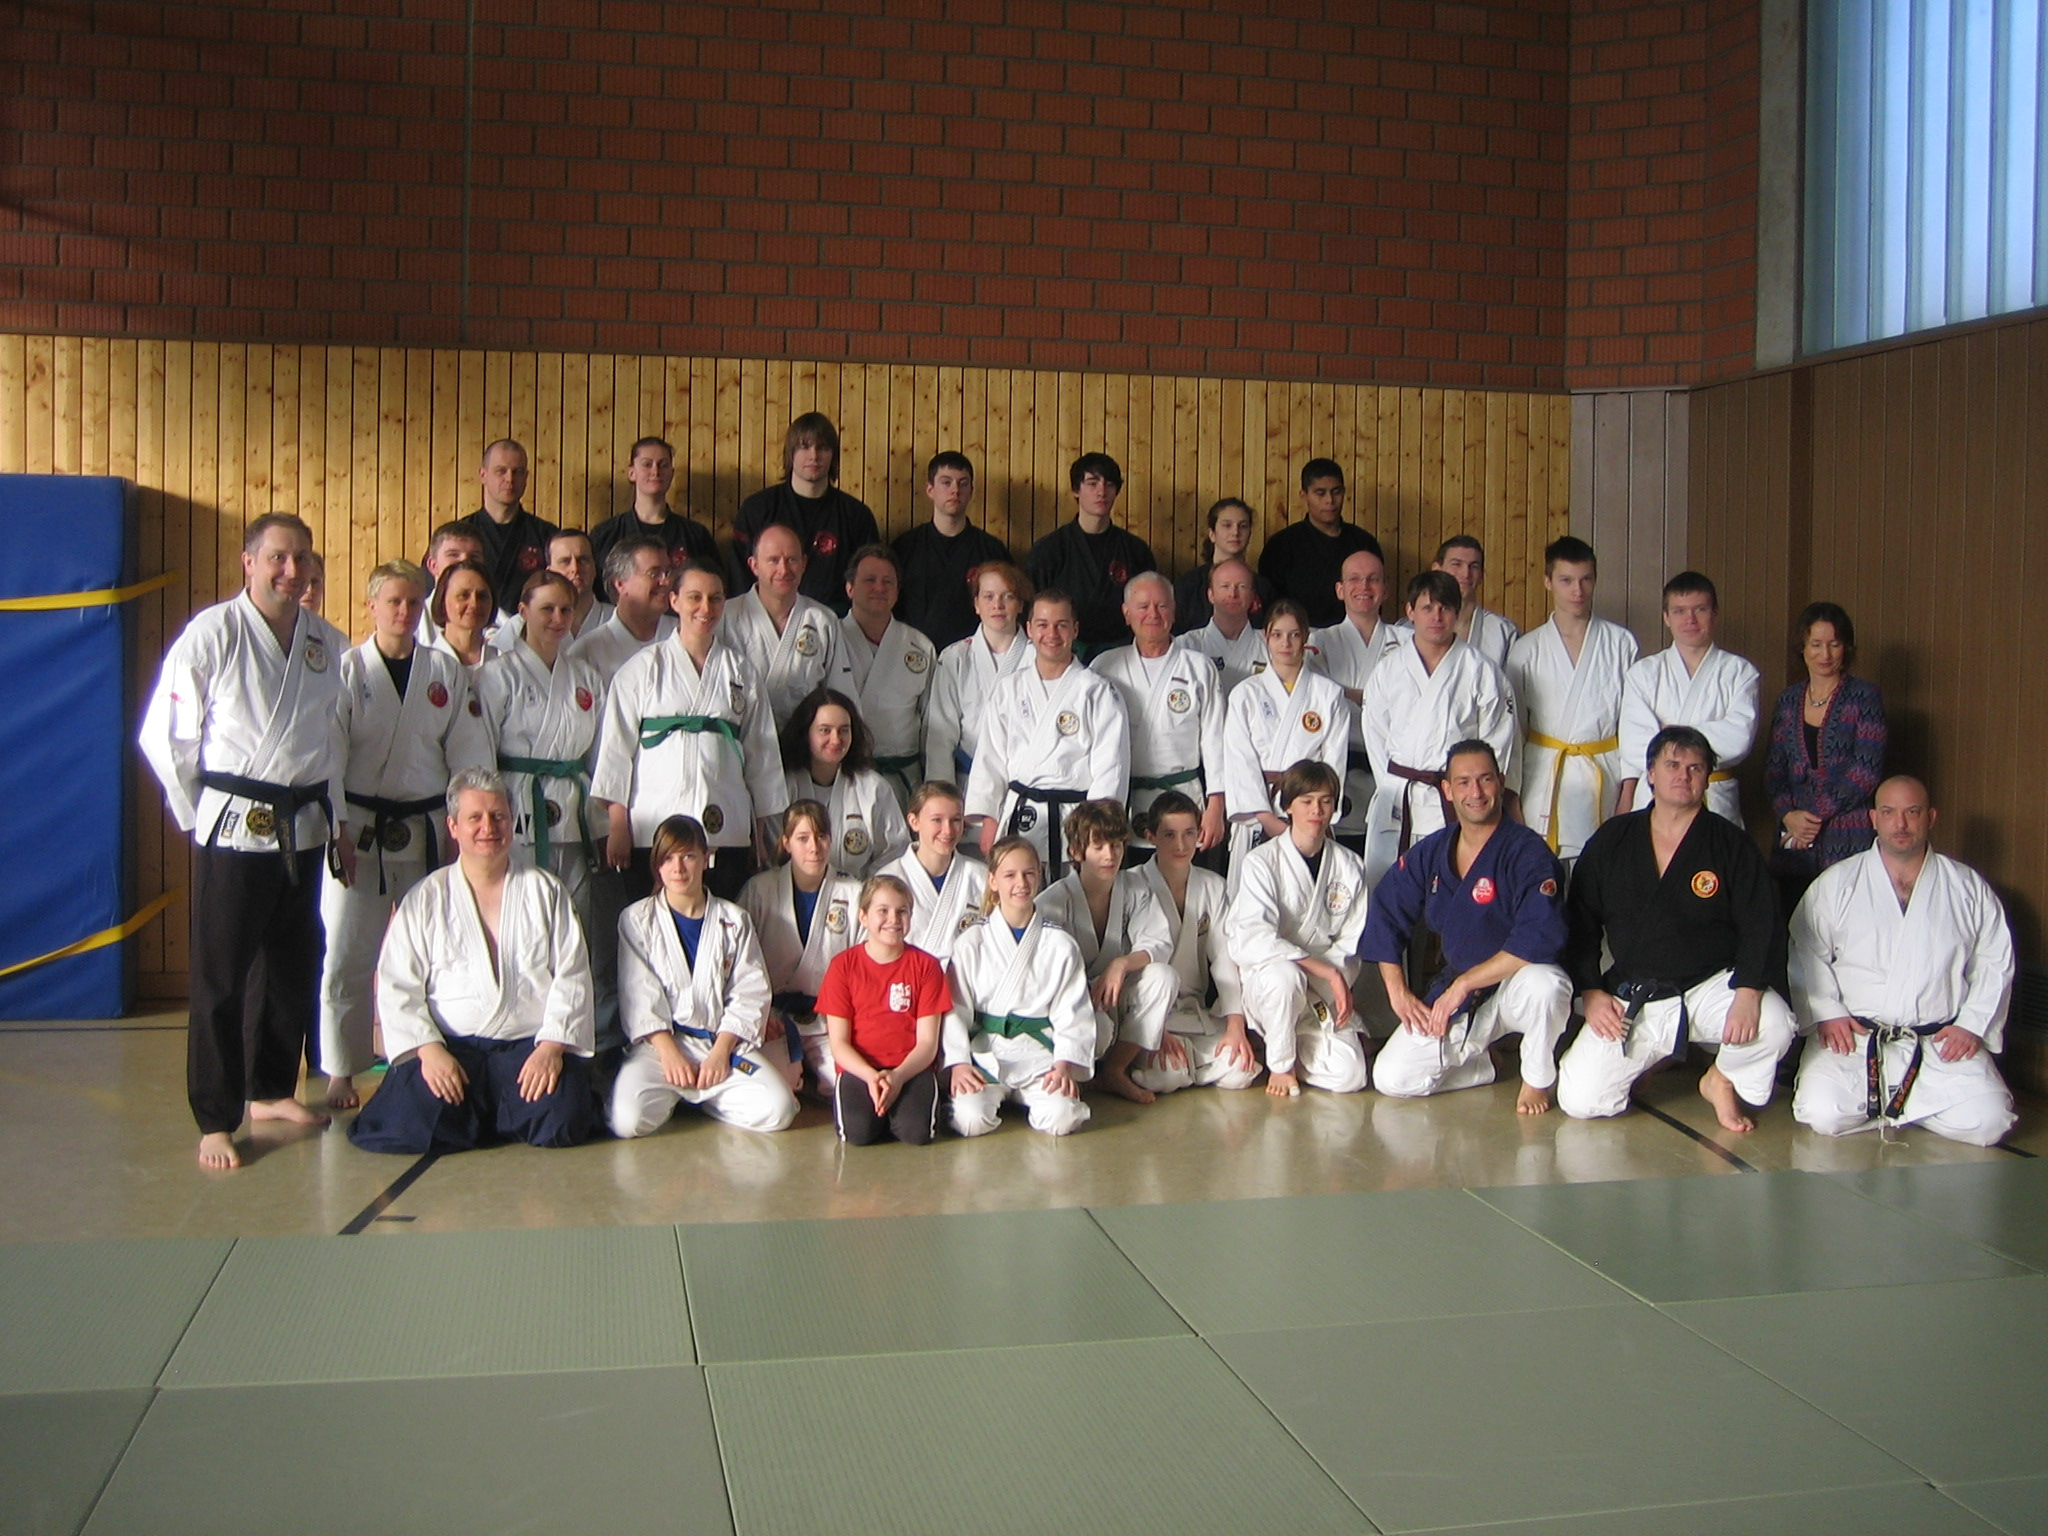 Budo-Benefiz in Bochum